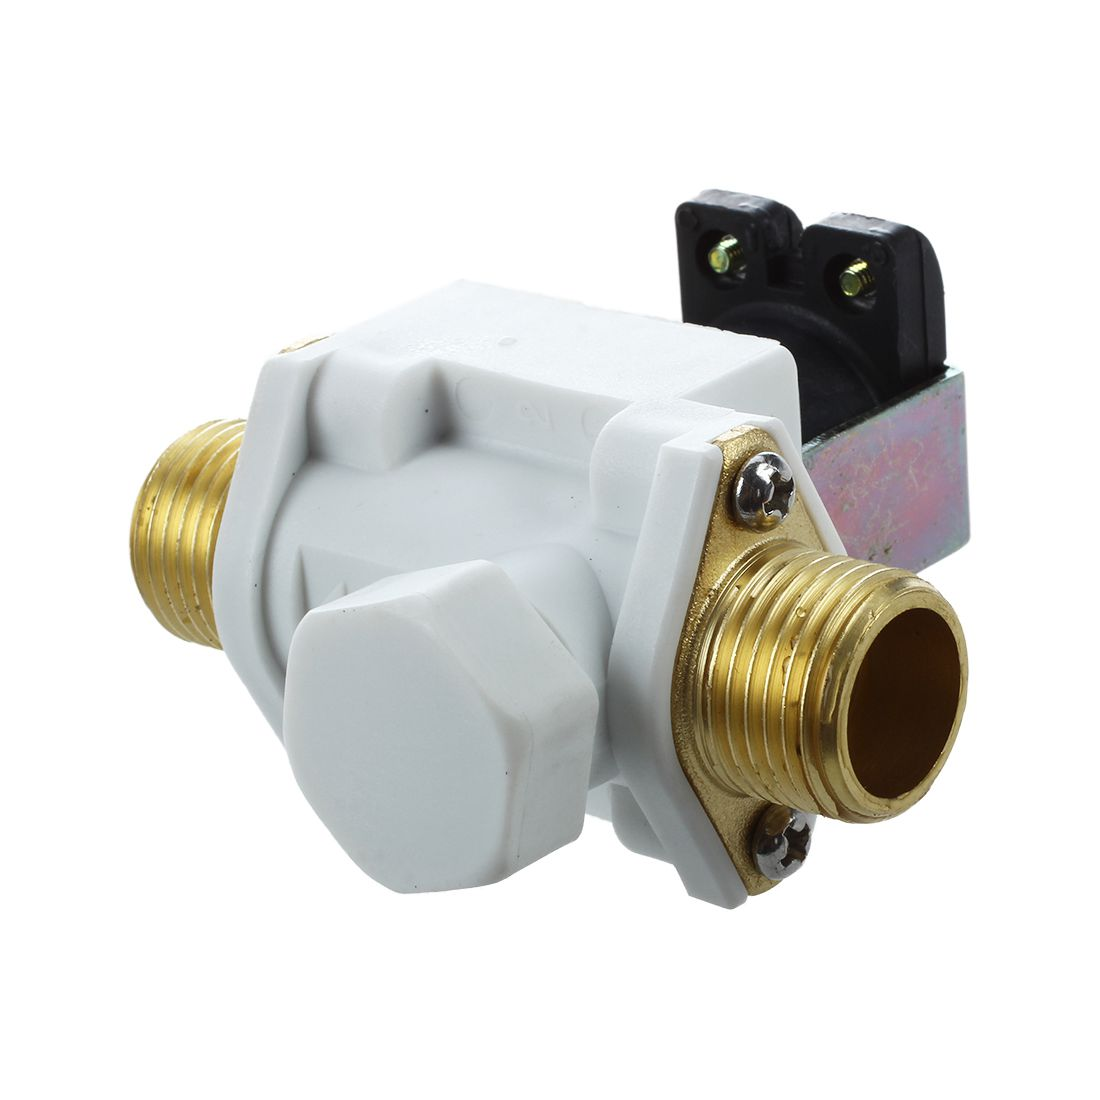 1pc DC 12V New Electric Solenoid Valve Magnetic N/C Water Air Inlet Flow Switch 1/2 Induction cooker parts светильник на штанге idlamp 863 863 2pf oldbronze page 9